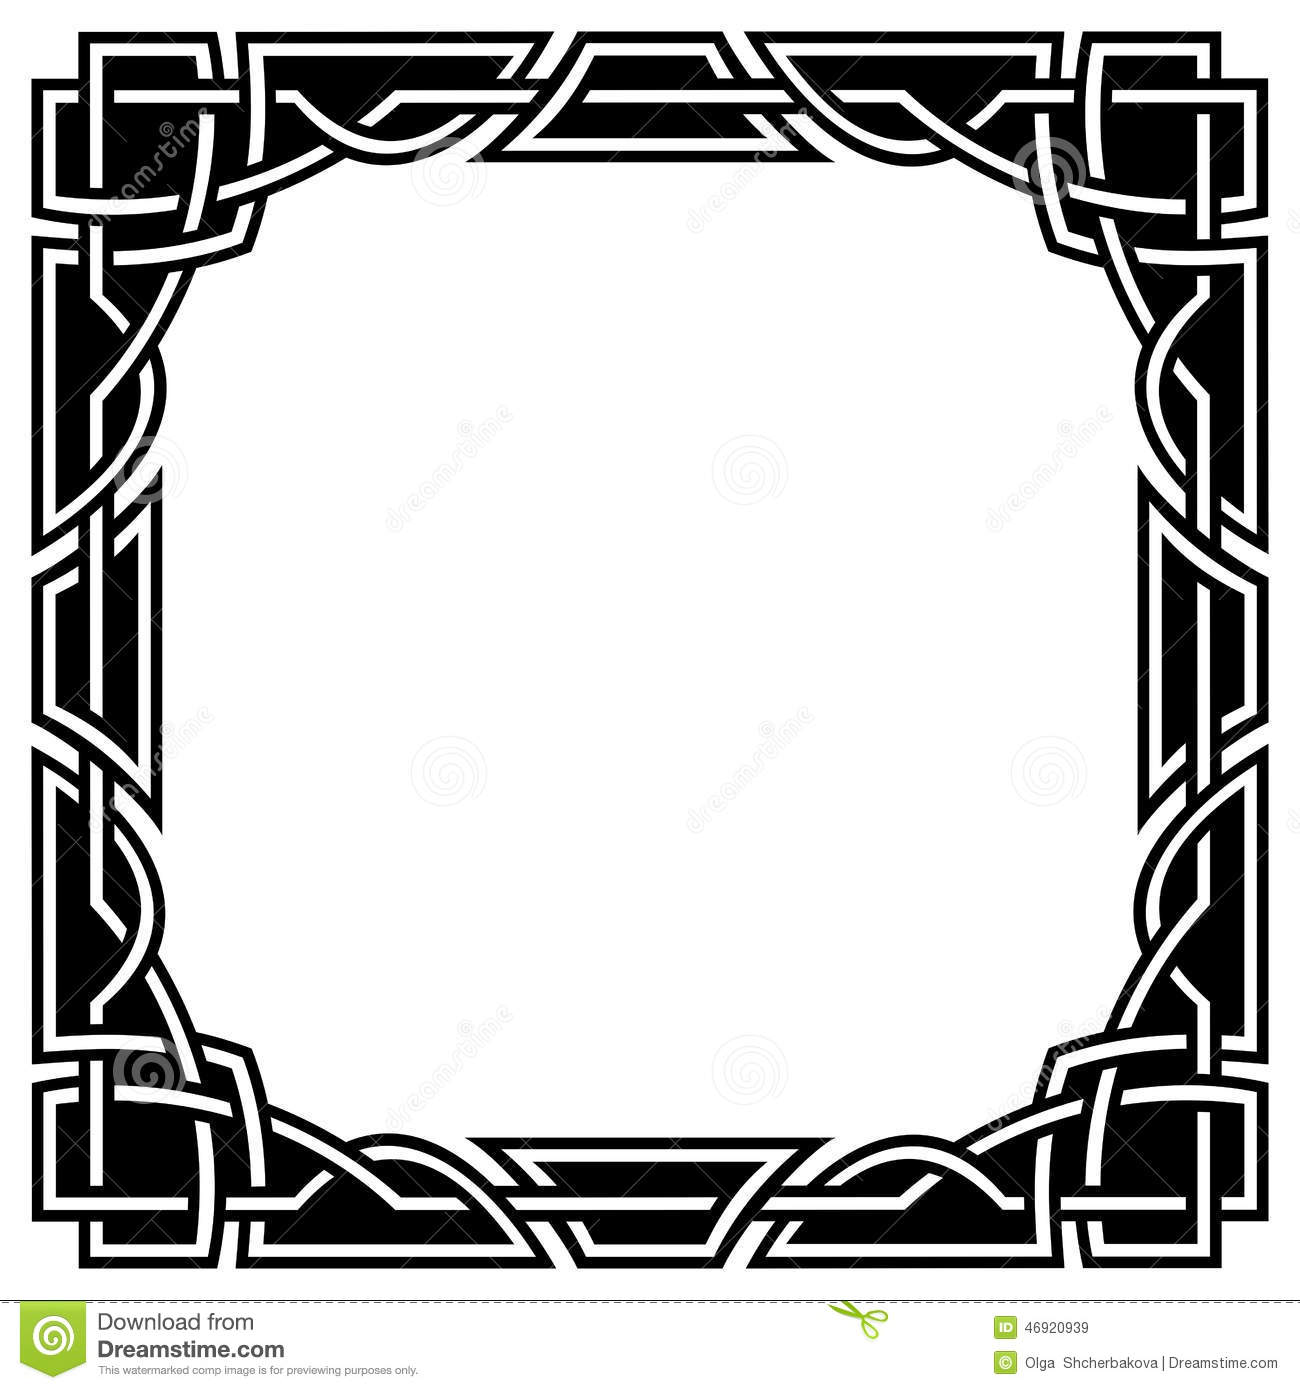 Simple square frame clipart